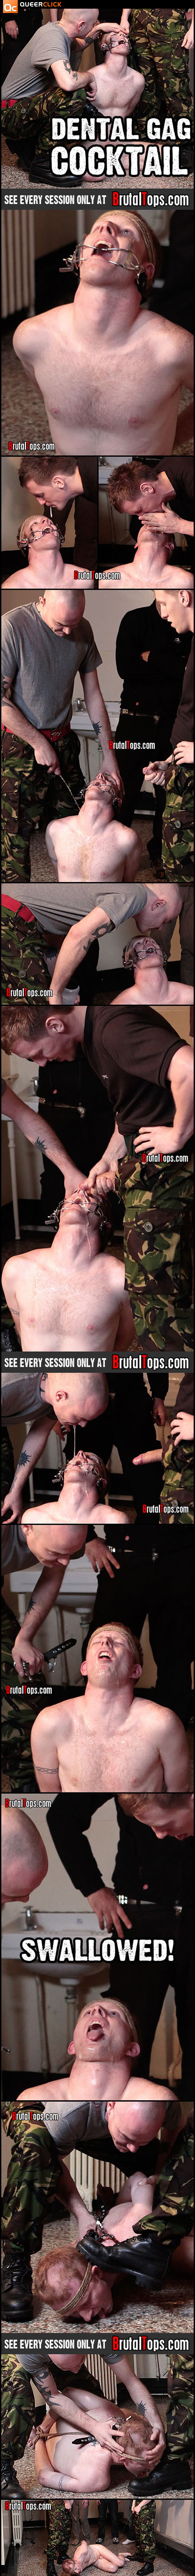 Brutal Tops Administer Dental Gag Cocktail